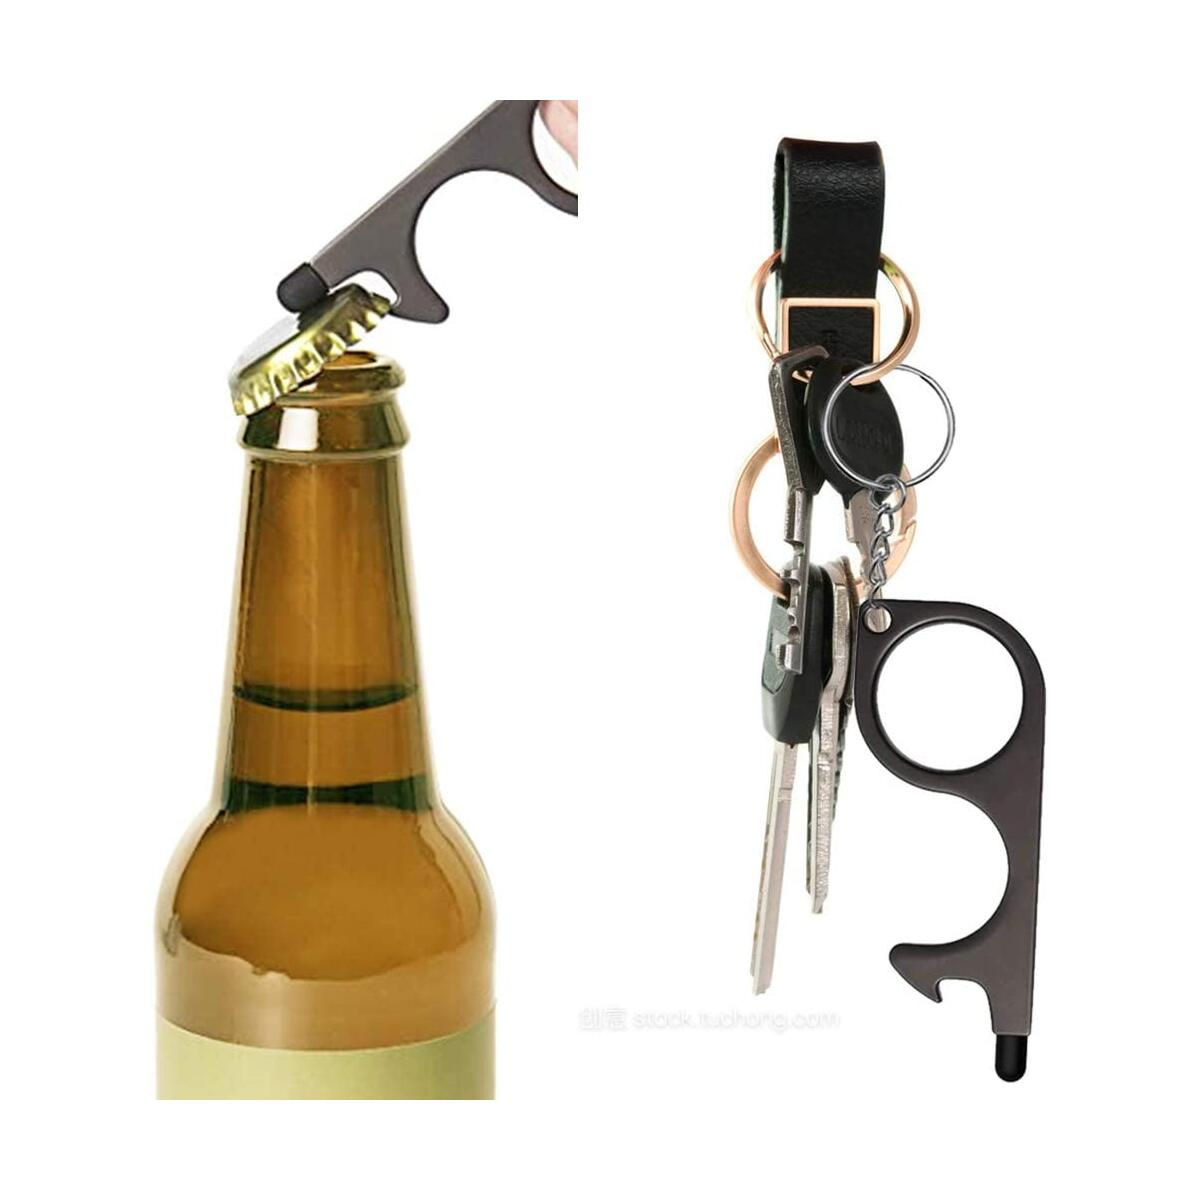 Bihuo No Touch Door Opener Tool, 2pcs Touch Hook 3-in-1 Multitool Door Opener Touch Screen Bottle Opener, Keychain Free Brass Stylus Touchless Germ Key Set (Gold & Black)